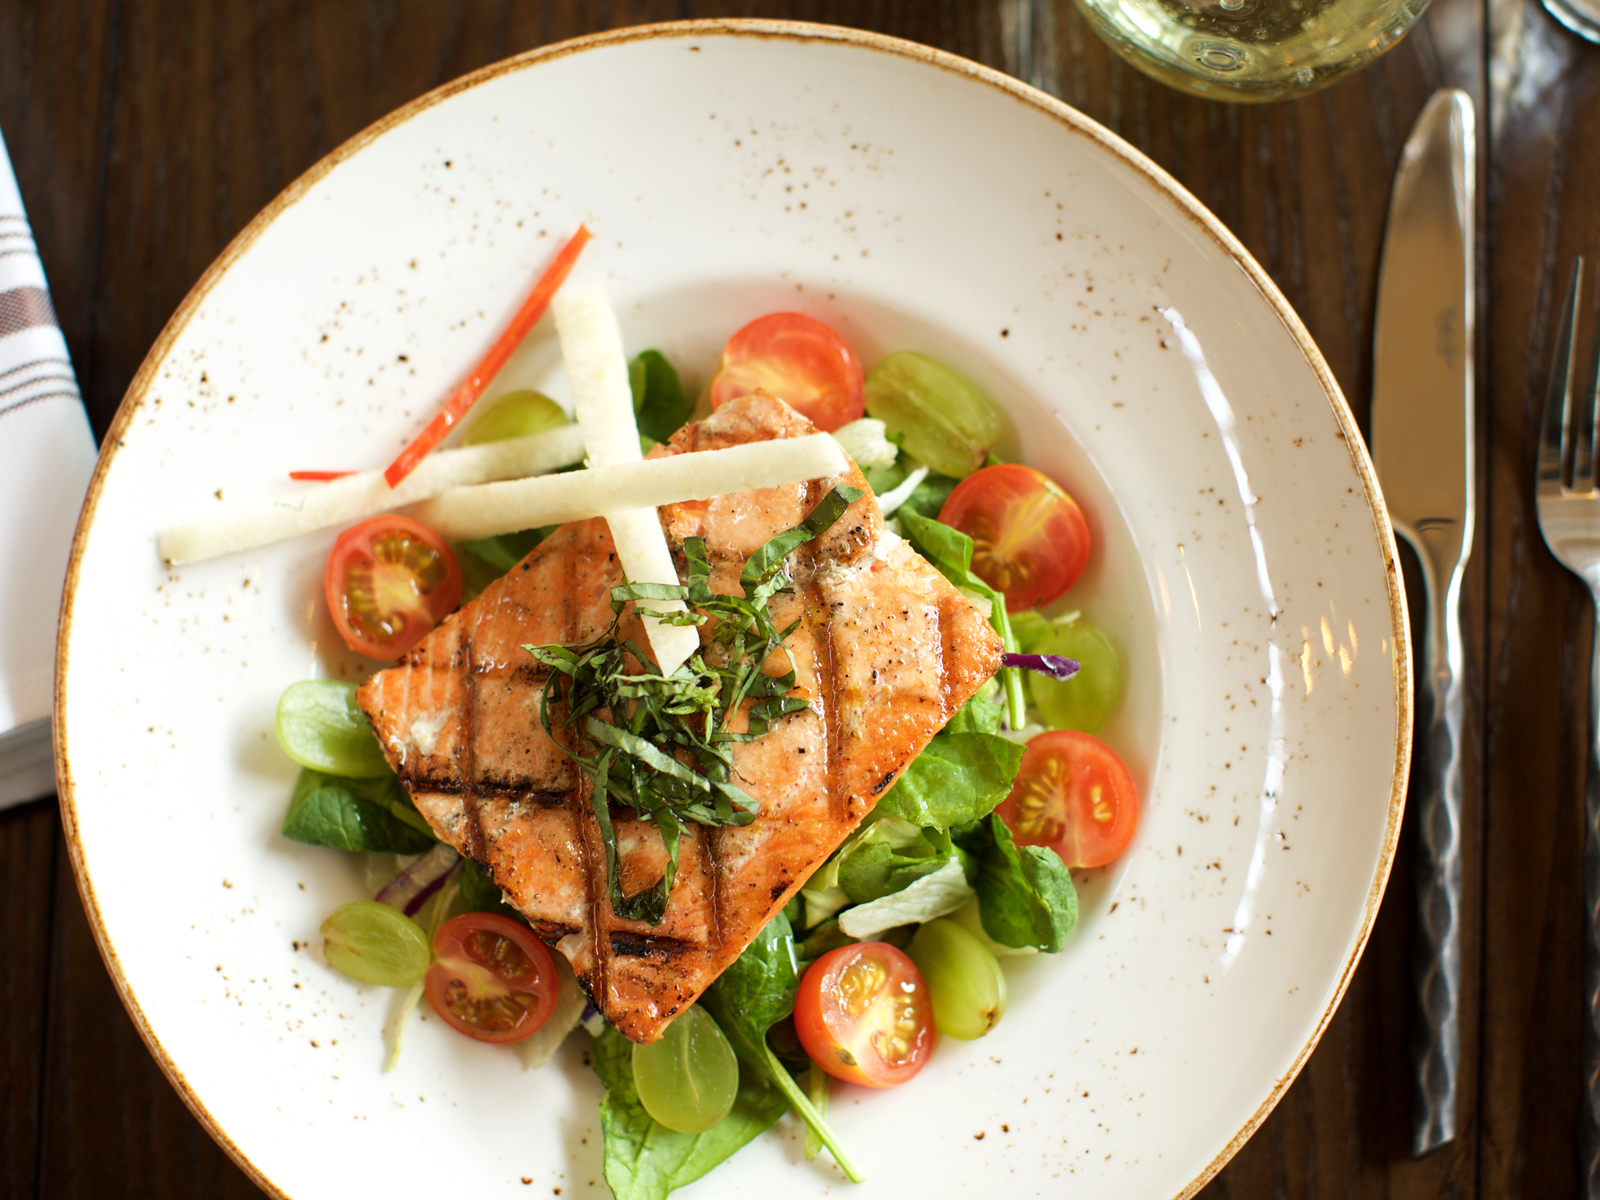 Virtuous food options, like grilled Alaskan king salmon with tomato, grape, and basil, are par for the course on Holland America's cruises